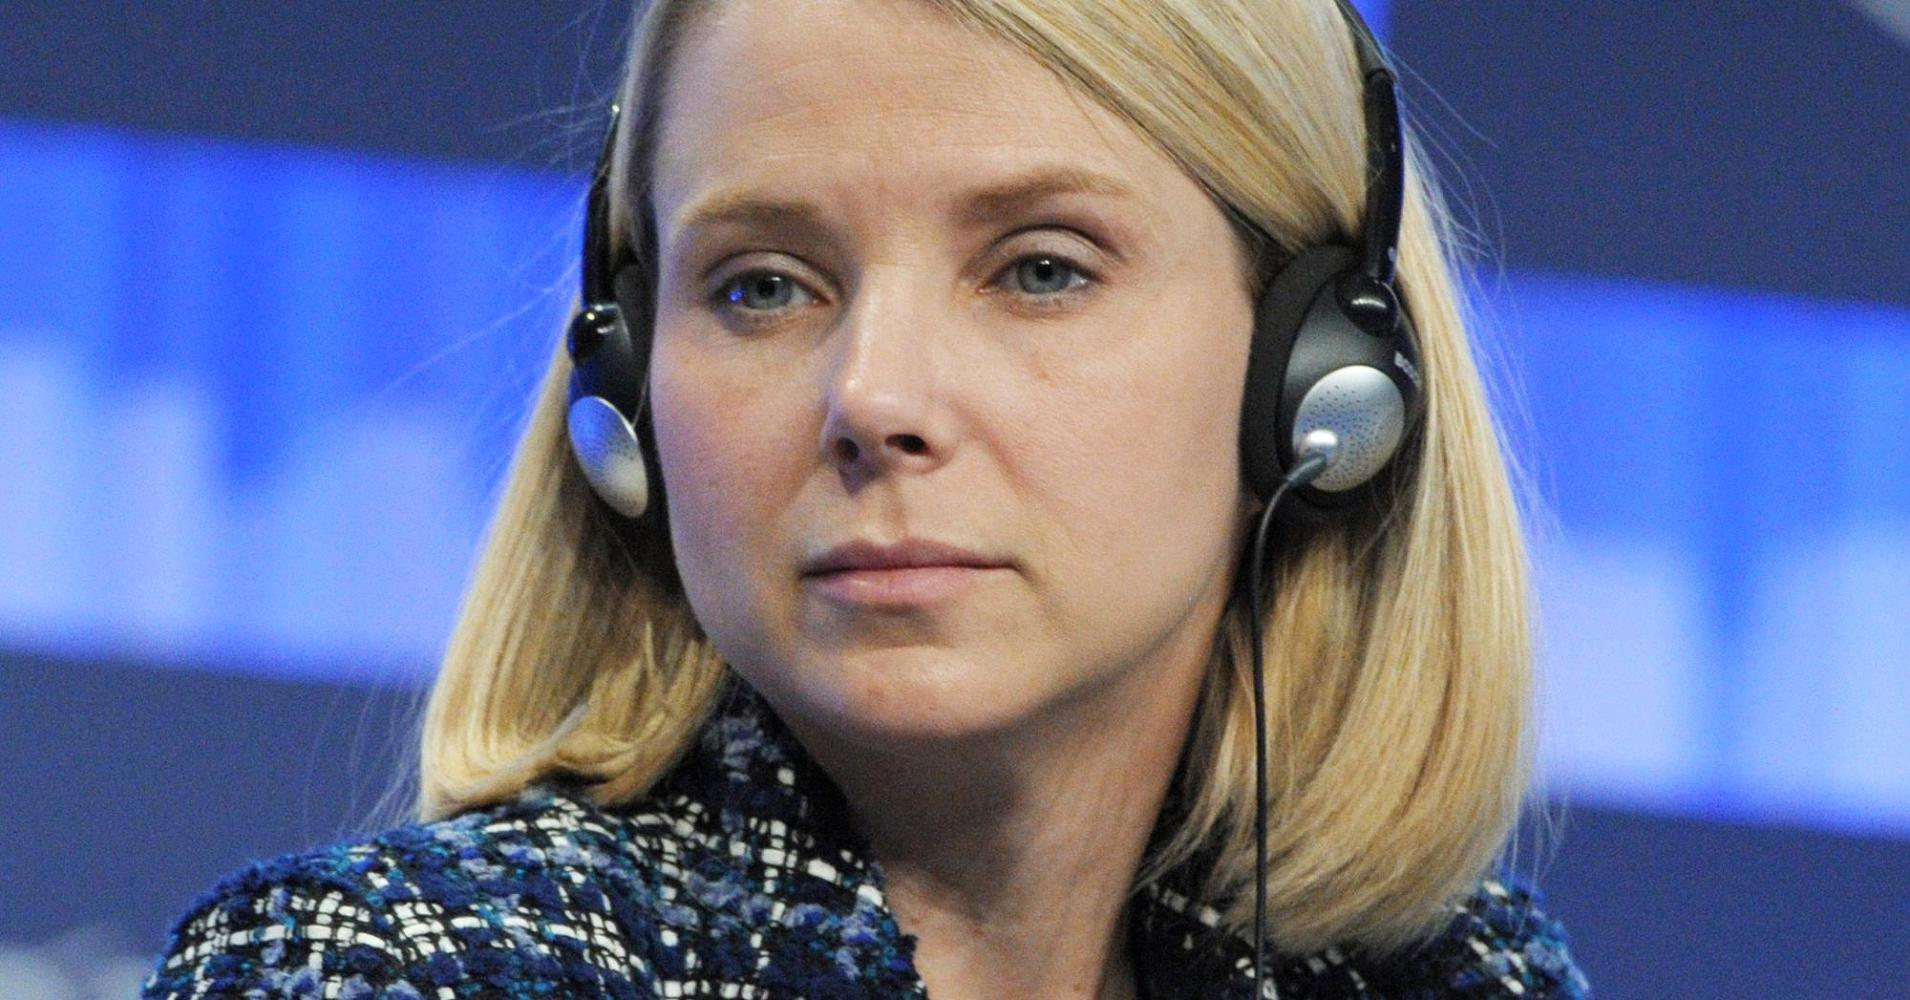 Marissa Mayer, take your full maternity leave